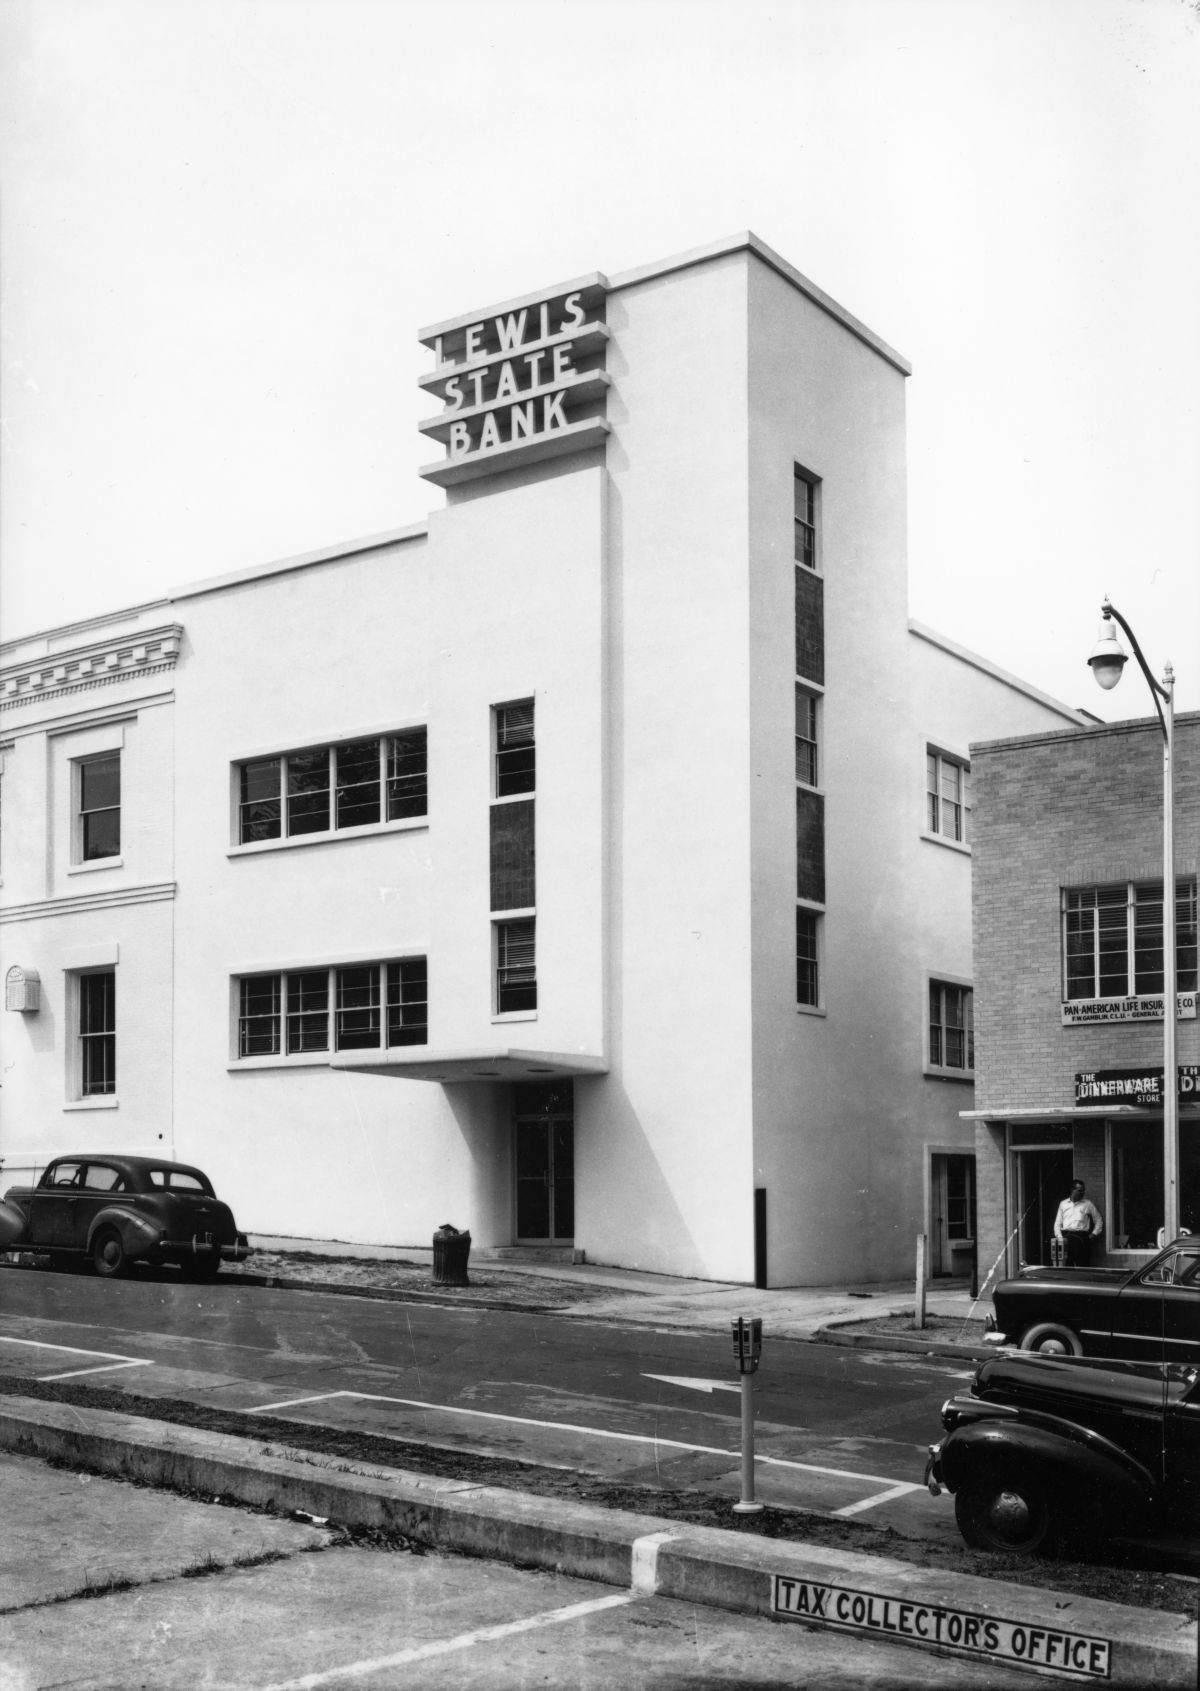 The Lewis State Bank Building In Tallahassee Florida 1950 Photo By Slade Florida Memory Tallahassee Banks Building Florida